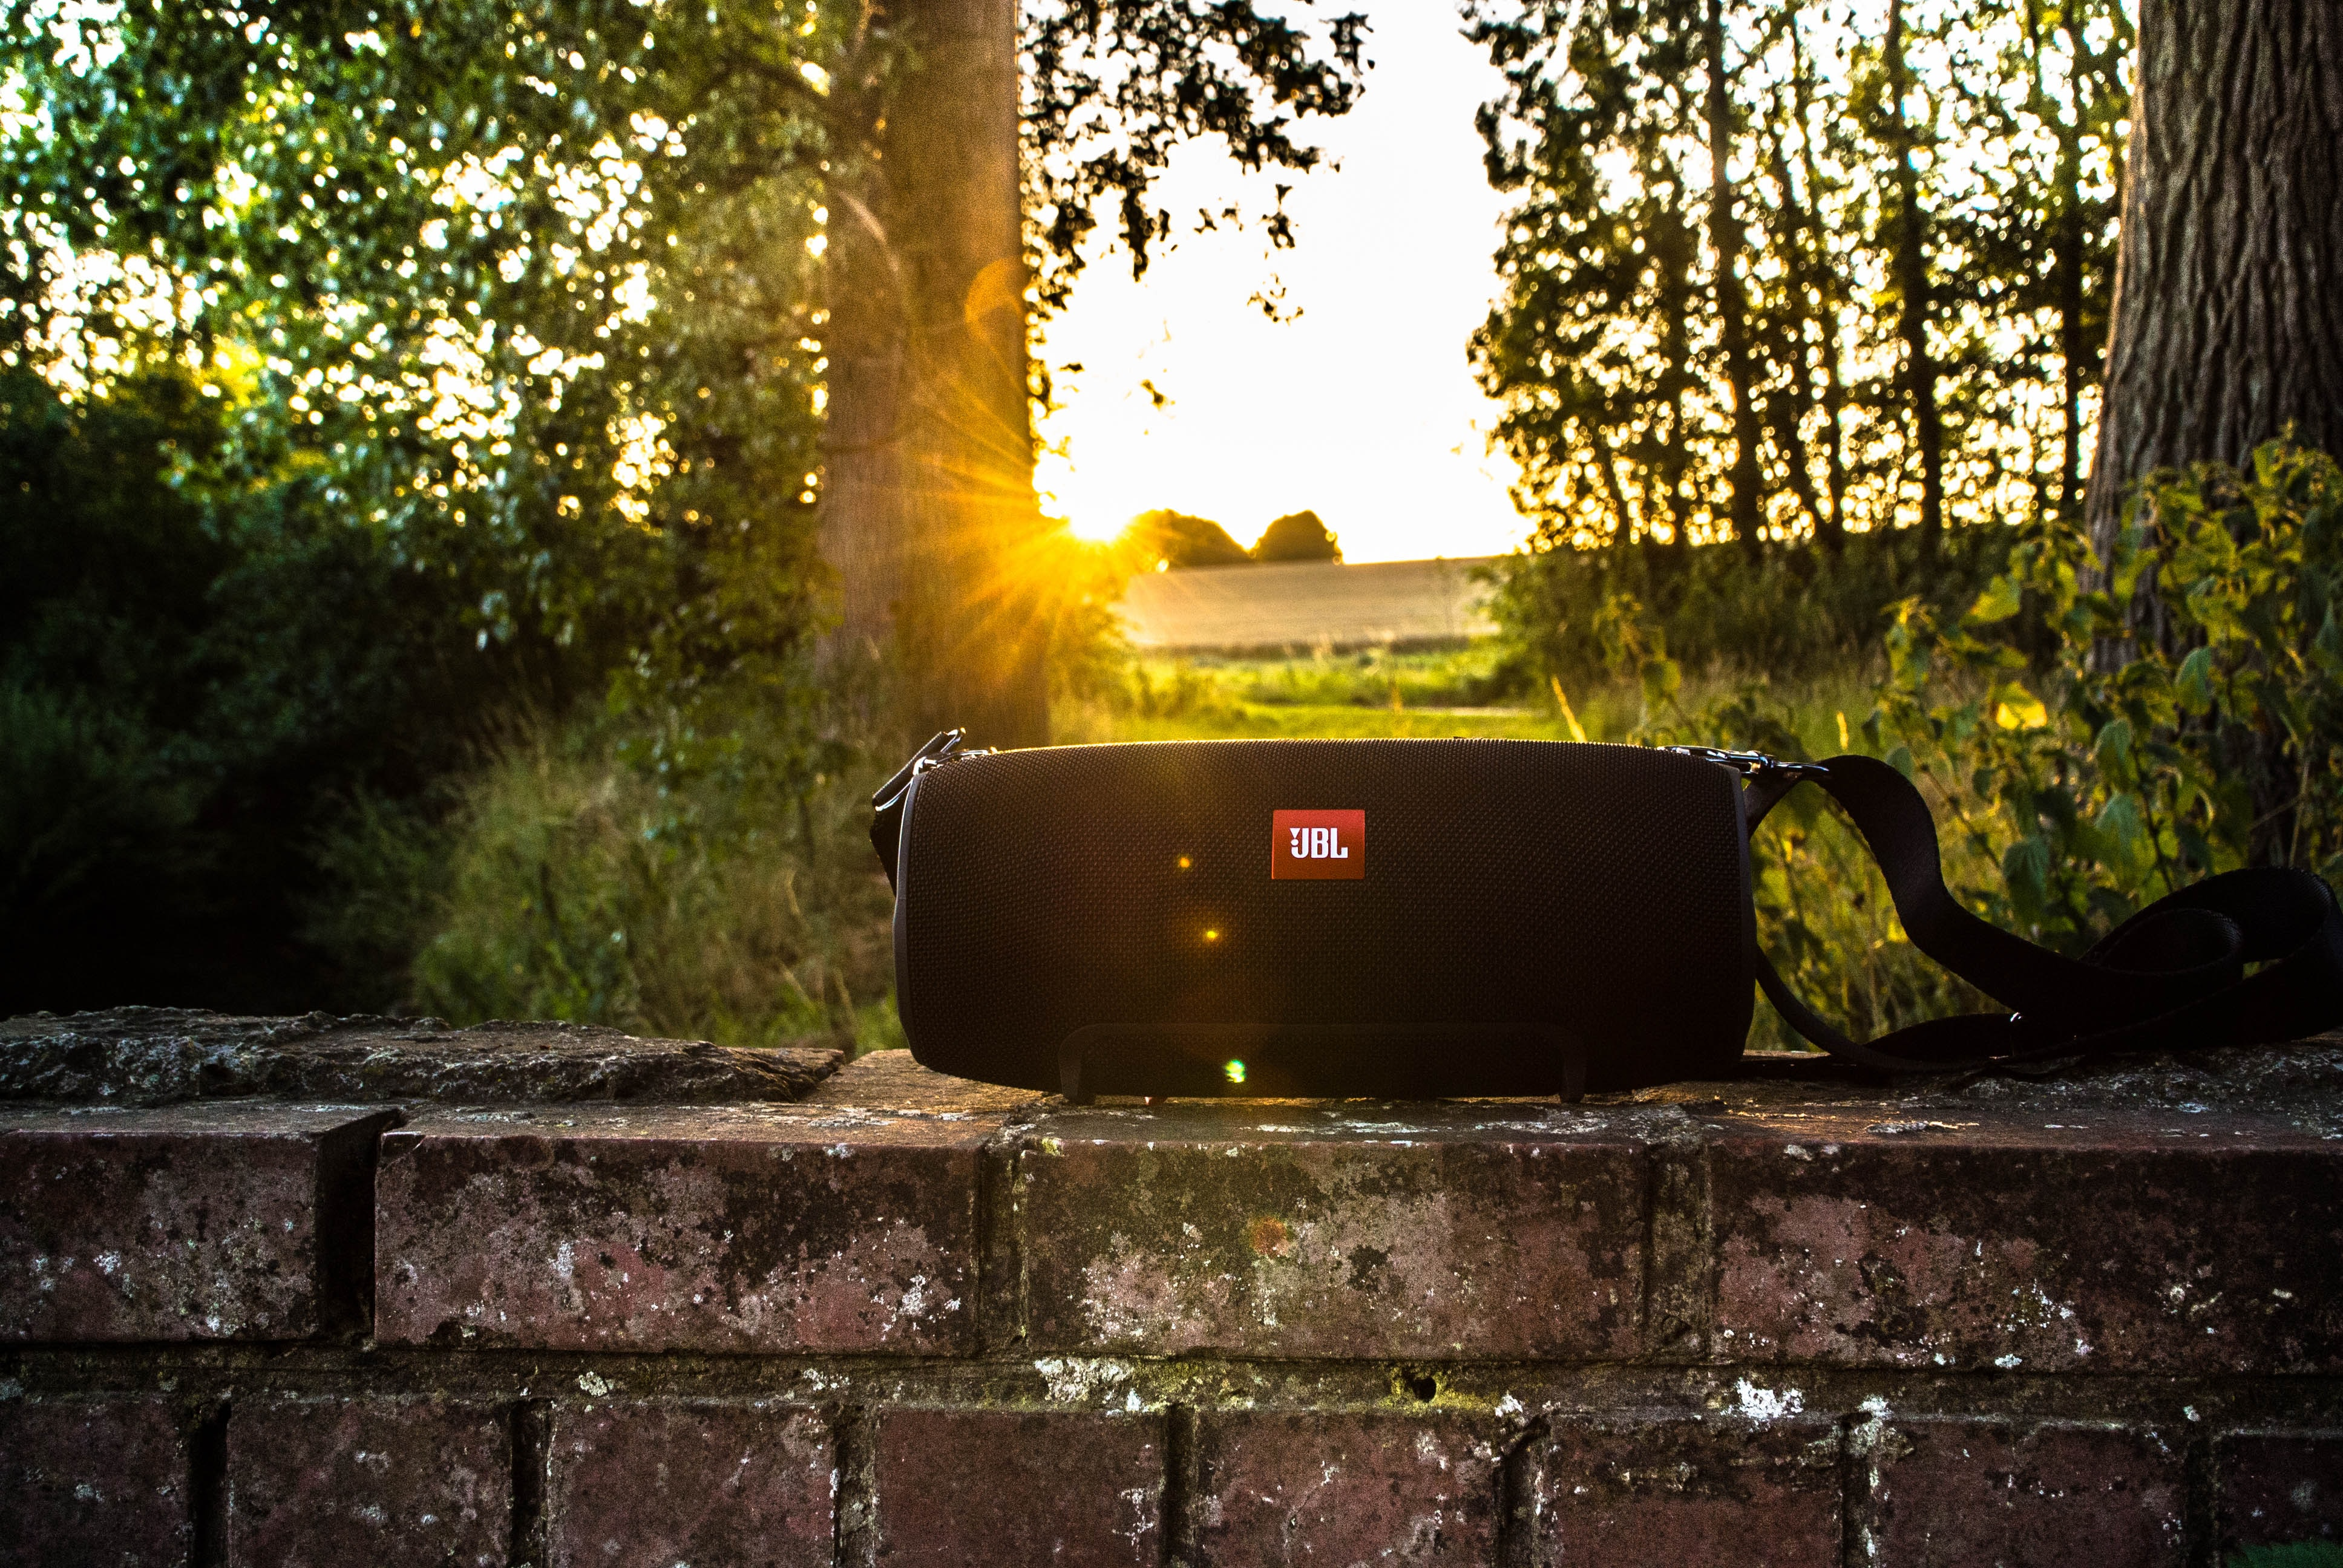 black JBL portable speaker on brick bench